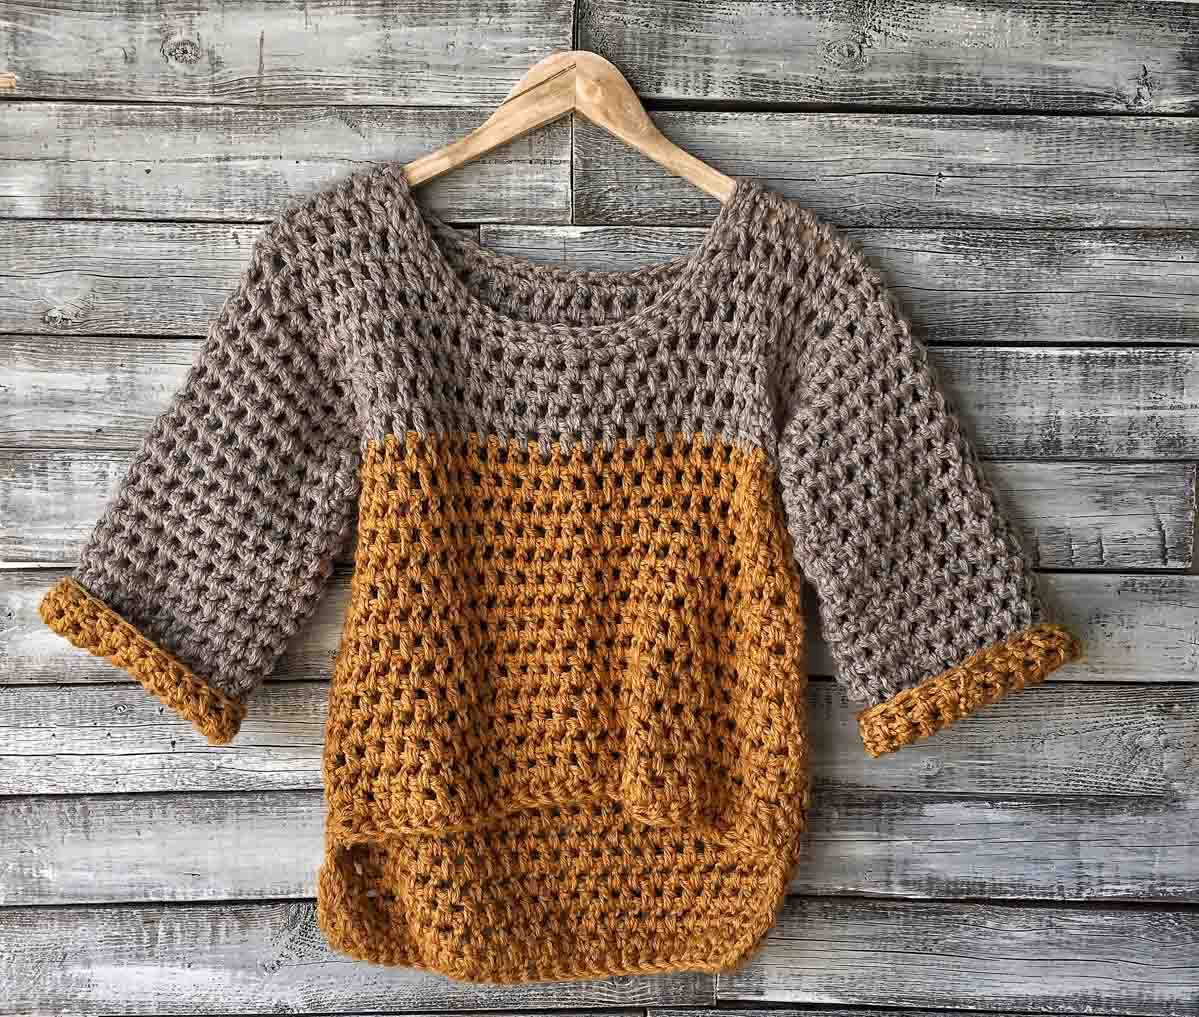 Crochet high-low sweater with 3/4 length sleeves hanging on a hanger. Made with gray and mustard yellow Lion Brand yarn.